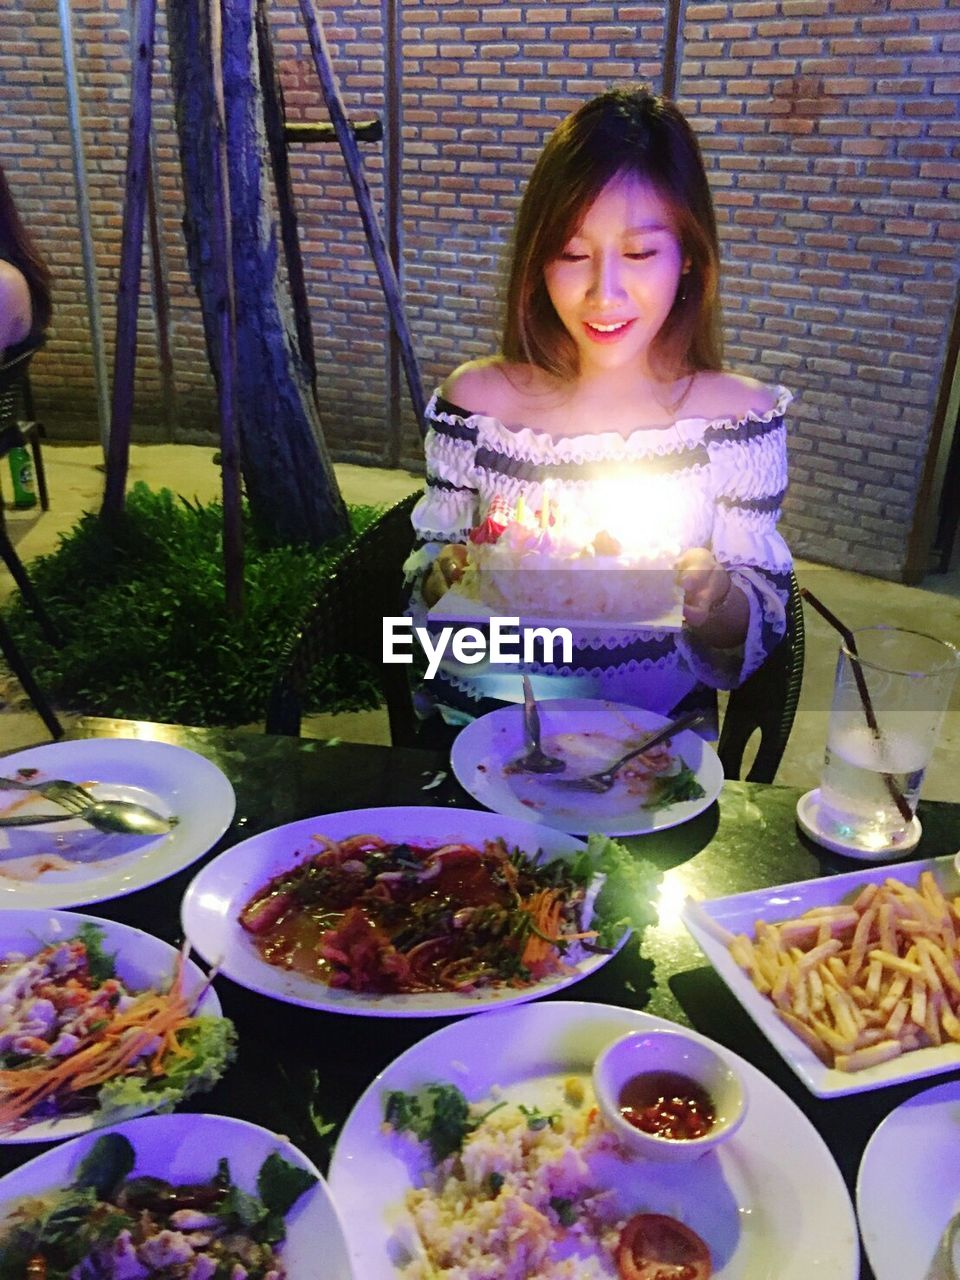 Woman Holding Birthday Cake With Various Food Served On Table